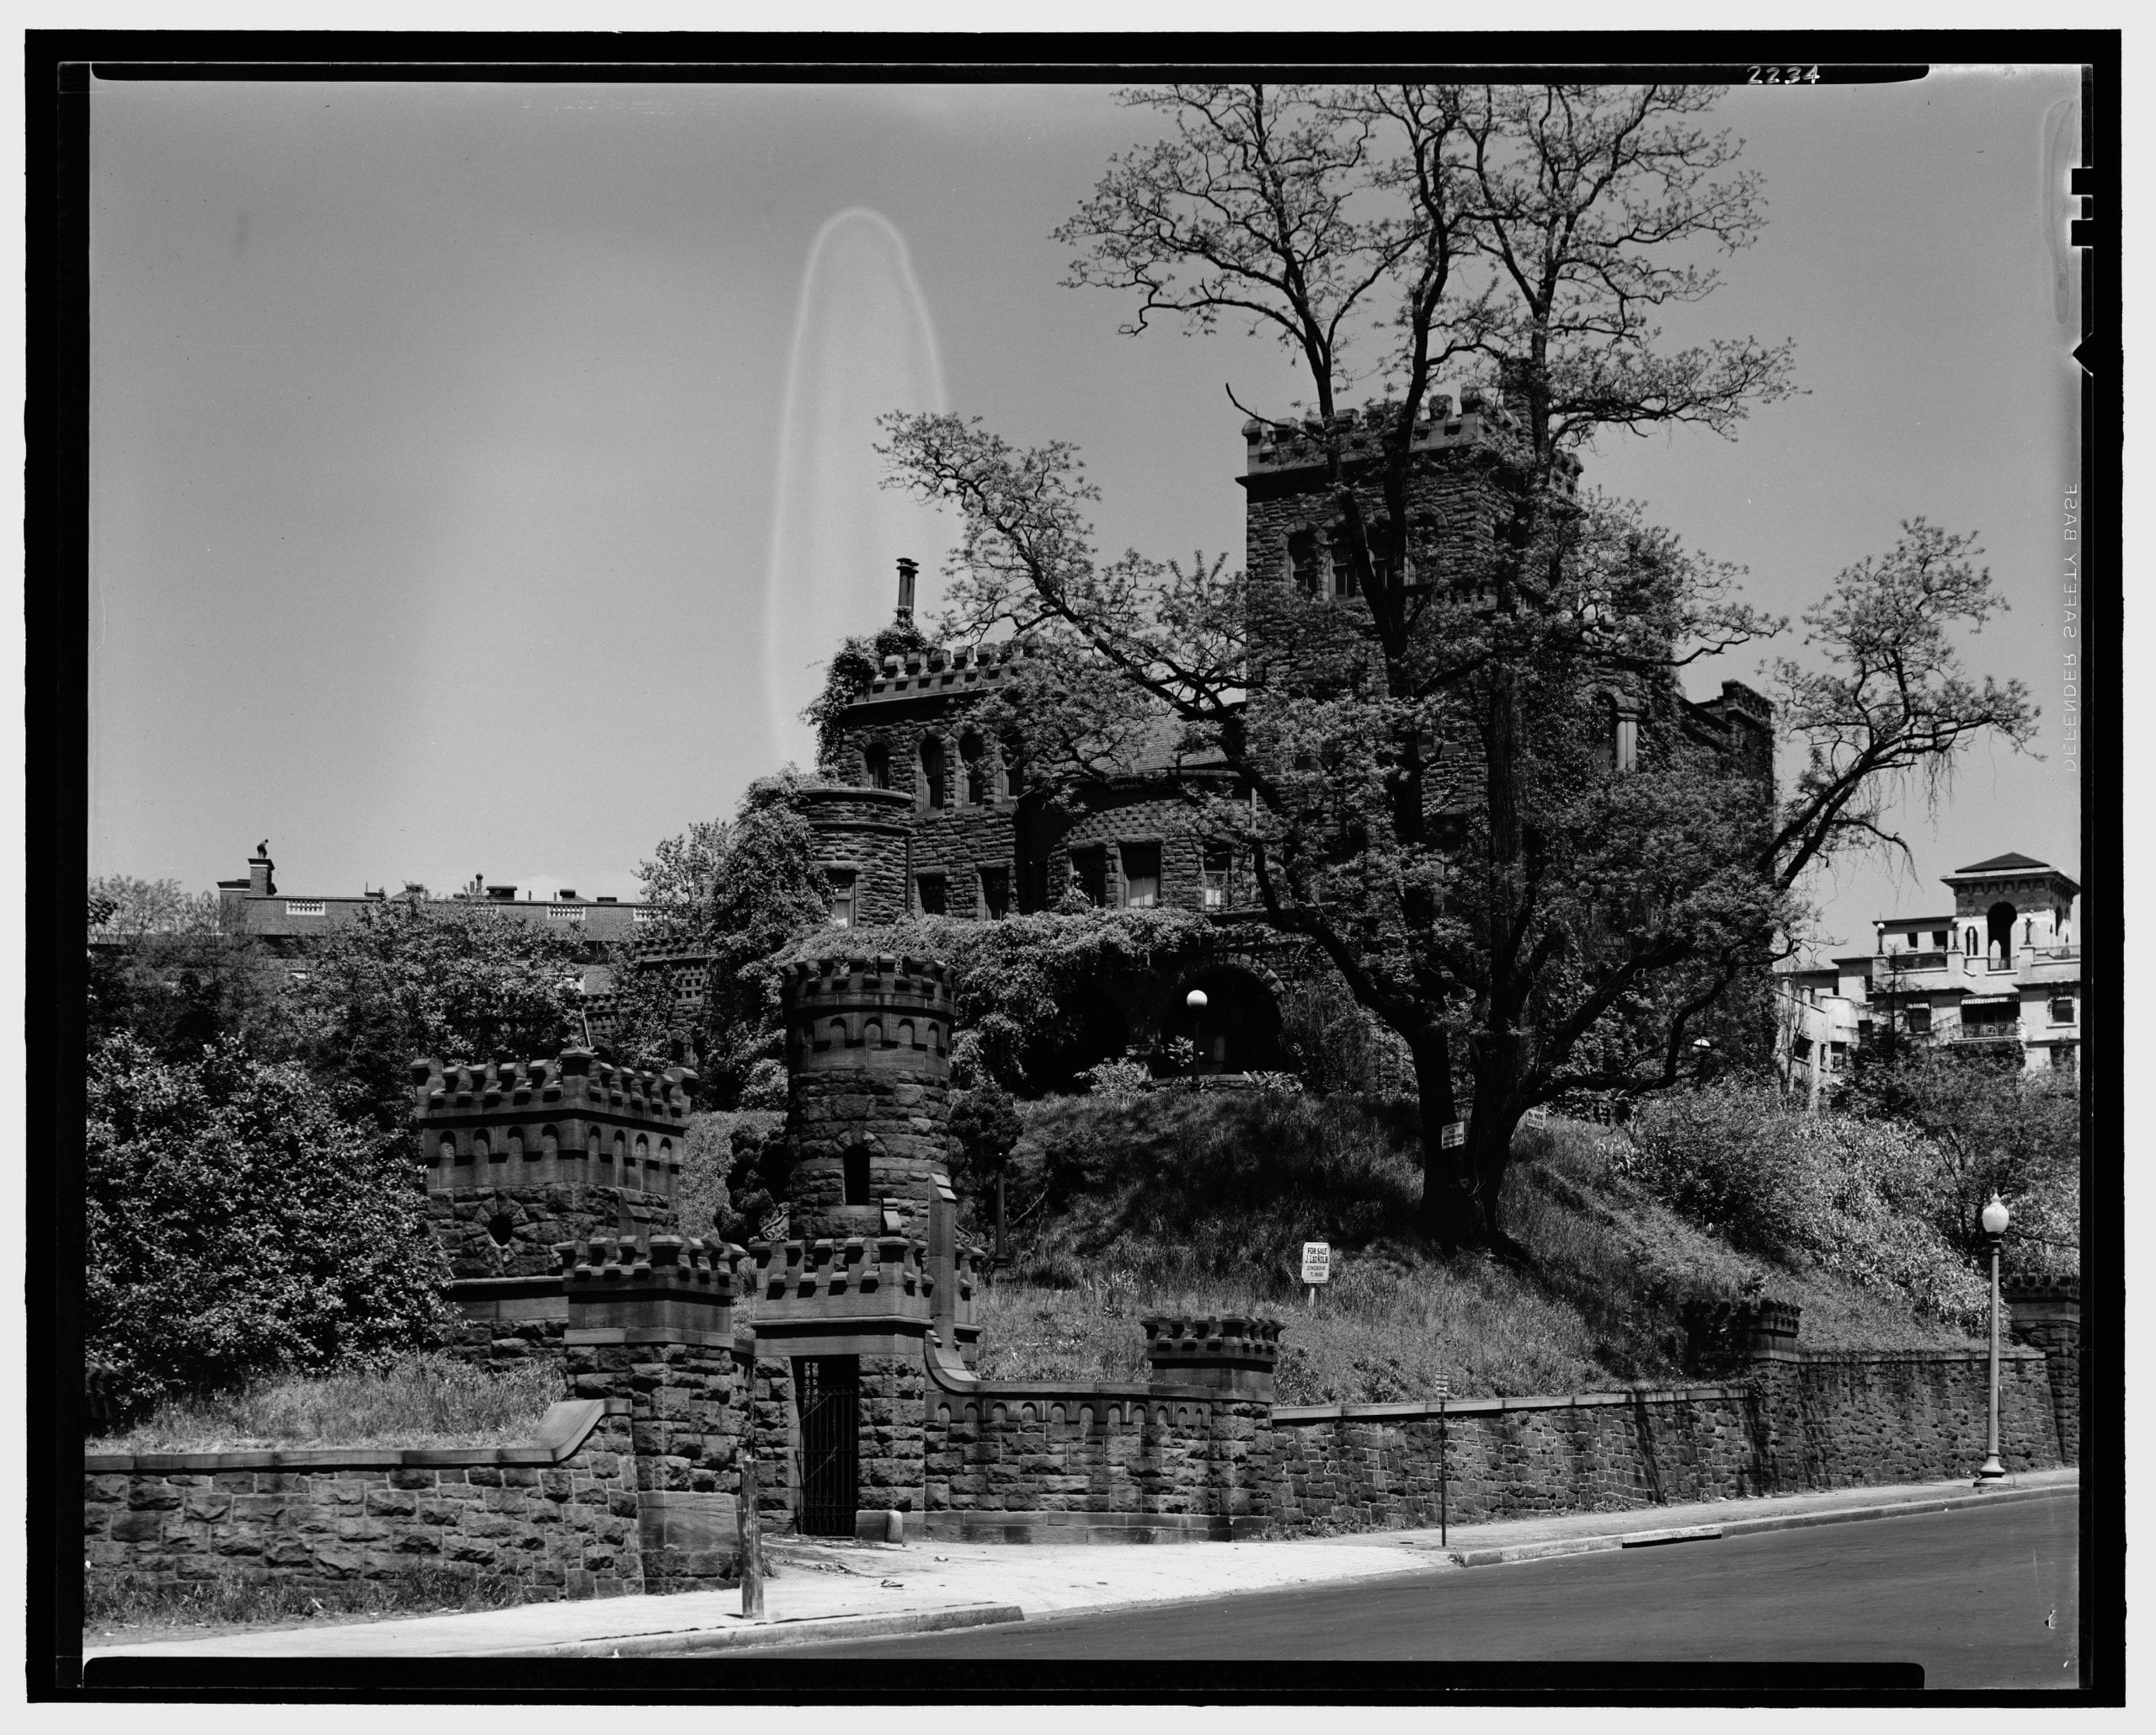 Boundary Castle in the 1920s by Theodor Horydczak (Library of Congress)